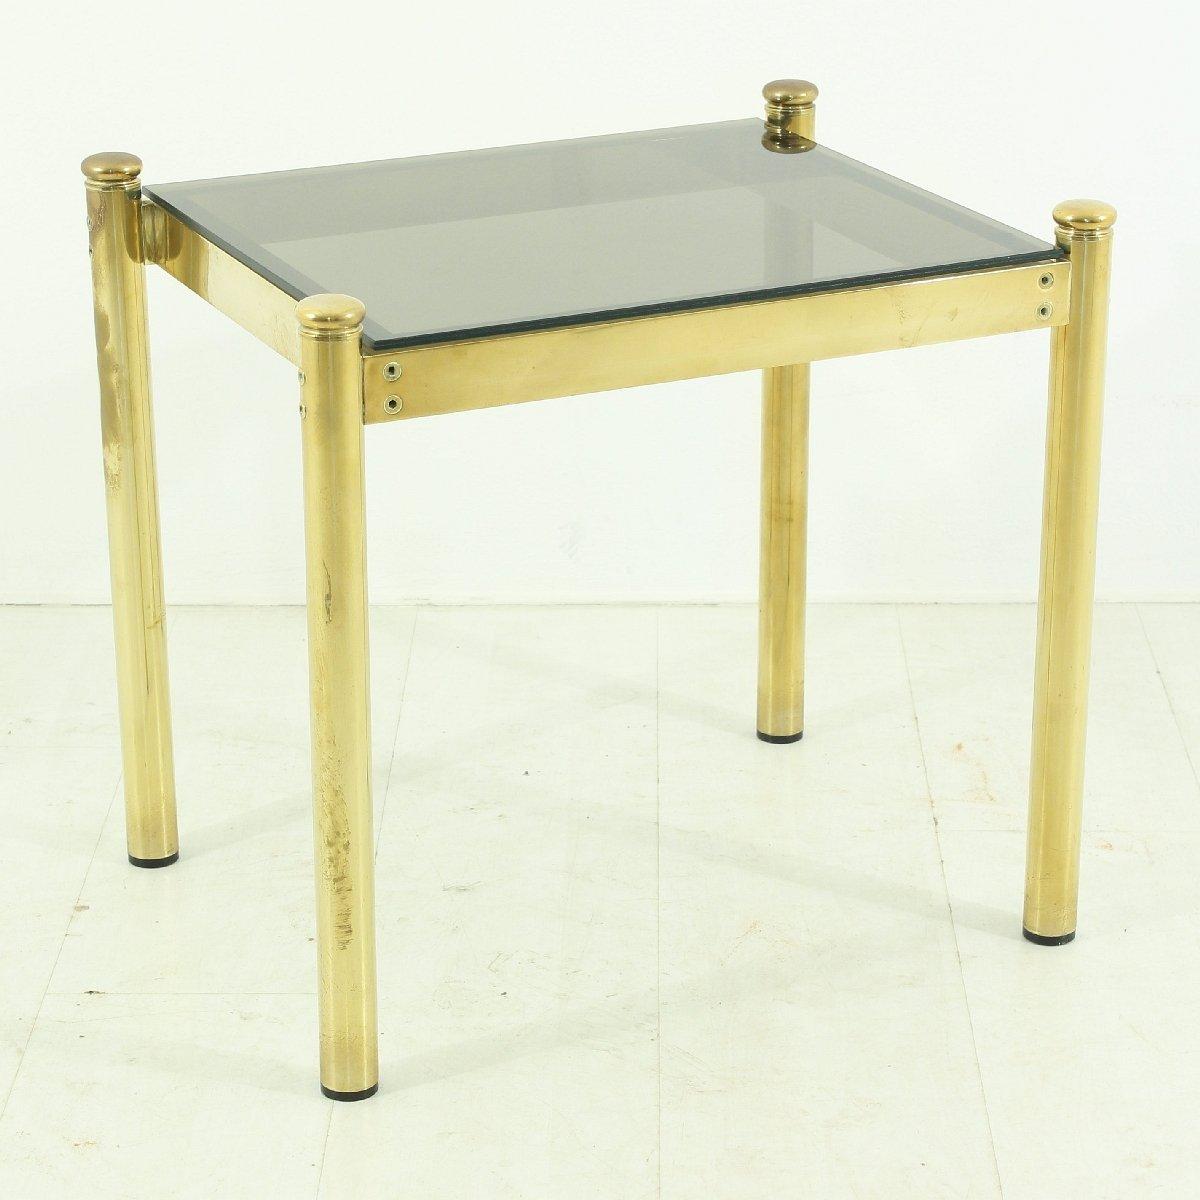 Vintage Brass Coffee Table With Smoked Glass Top For Sale